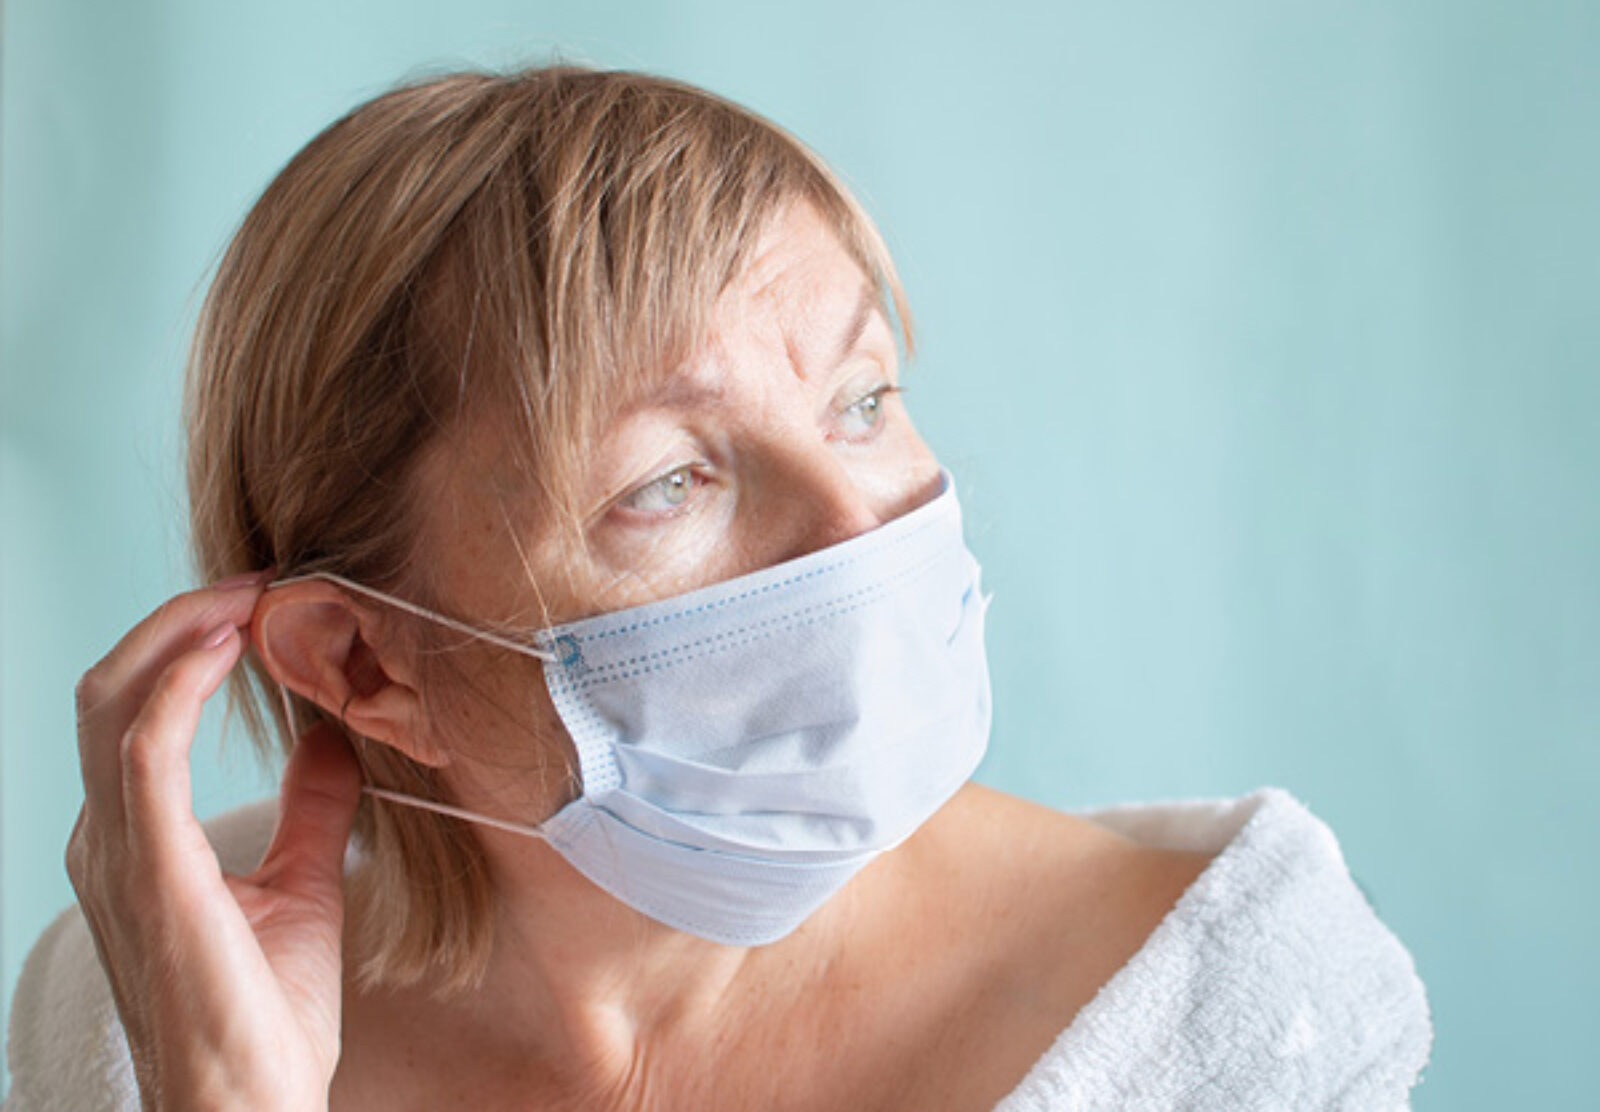 Well in Mind: 6 Coping Strategies to Combat Pandemic Fatigue